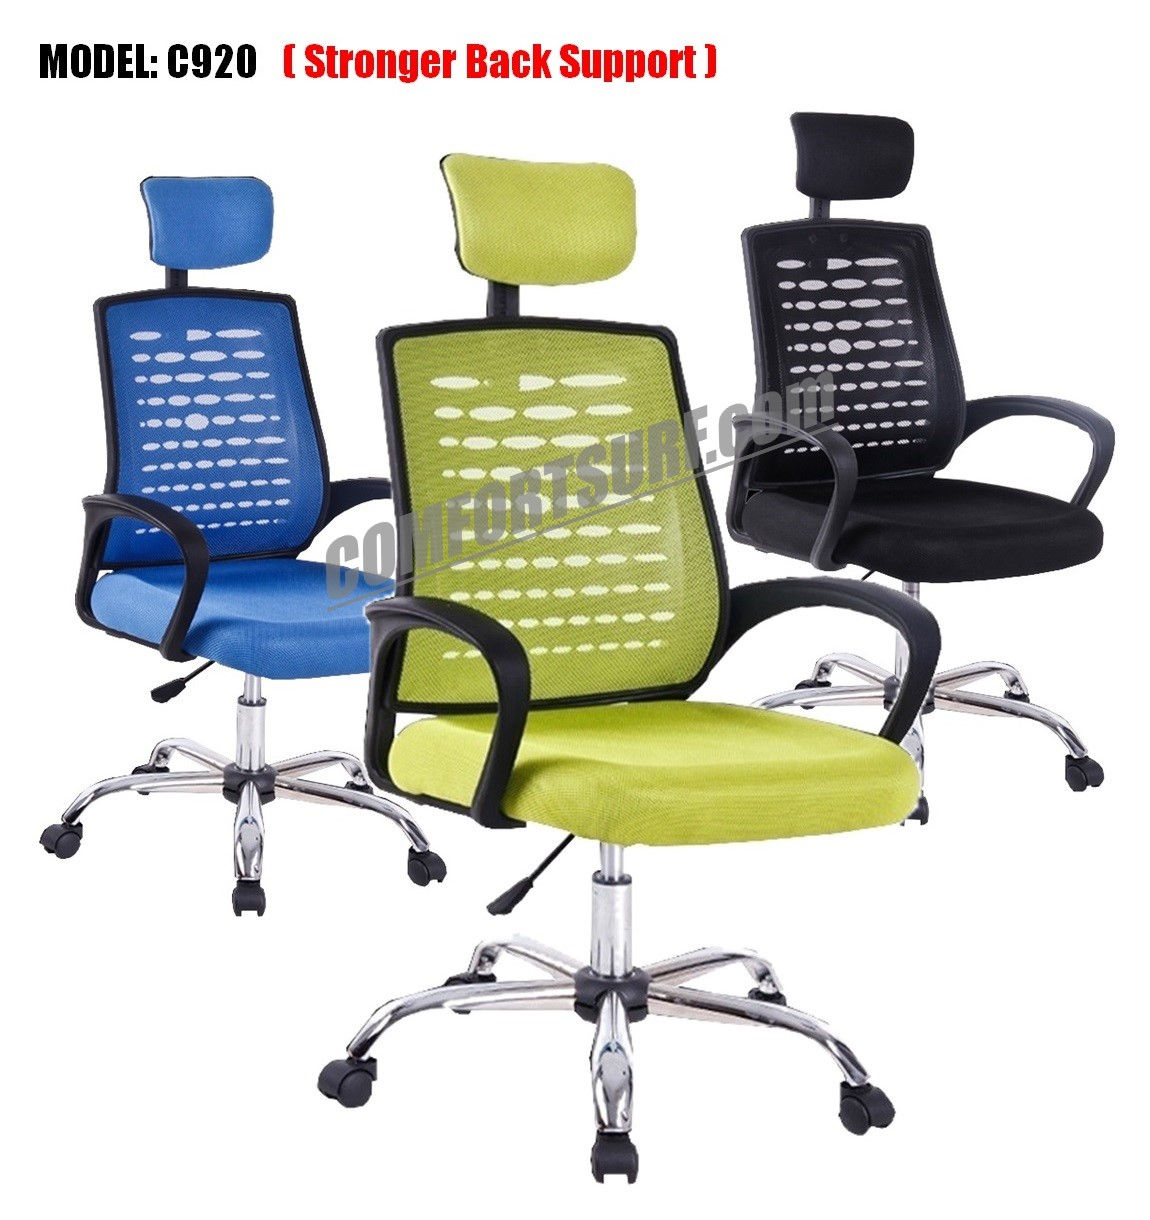 seat height chair indoor lounge chairs target c920 adjustable ergonomic large swivel mesh